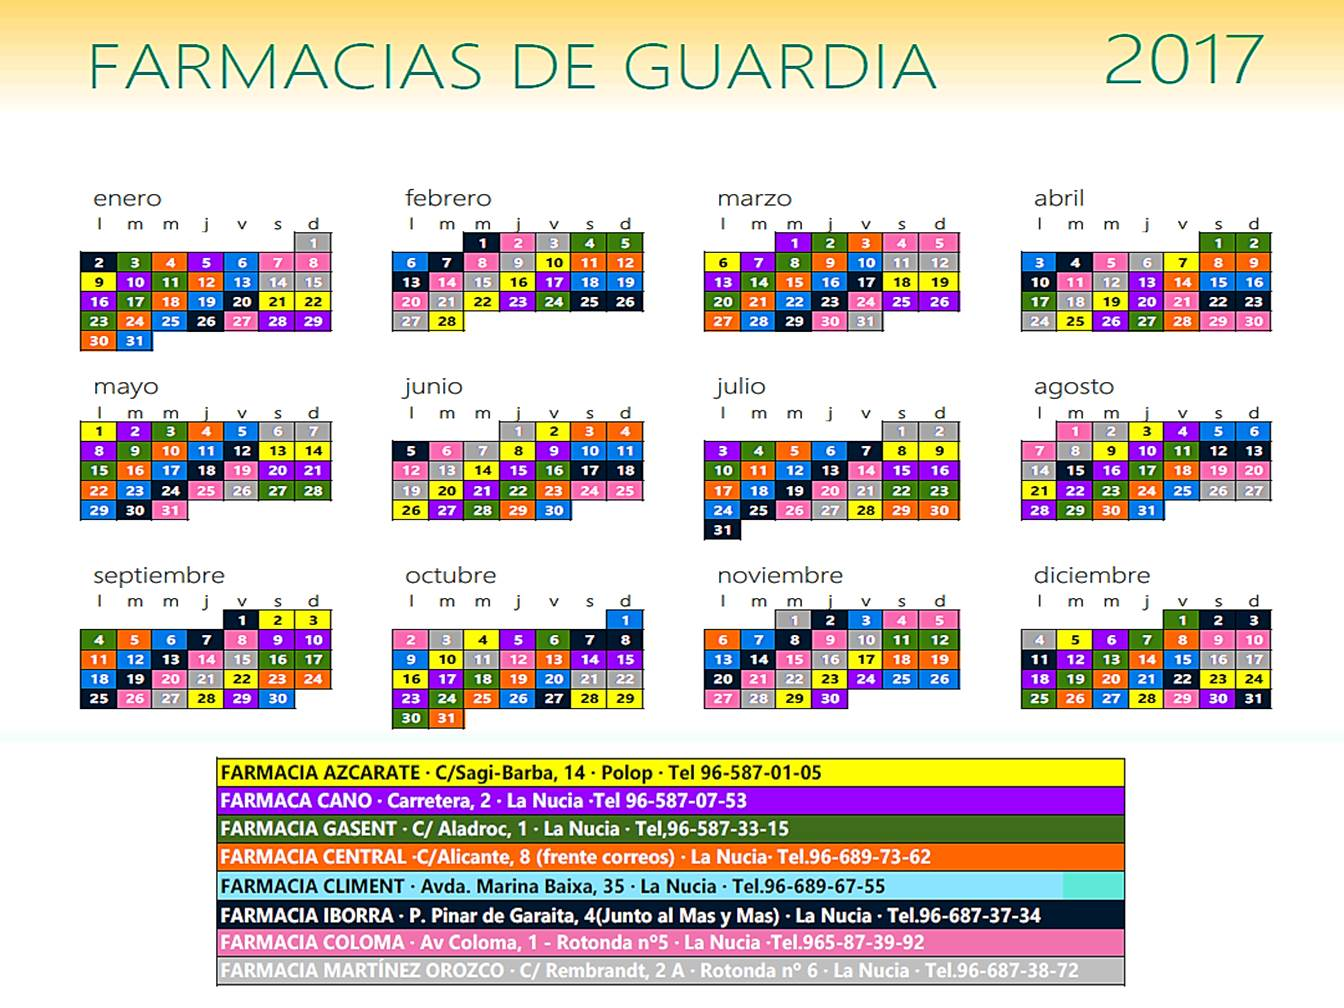 Farmacias de guardia 2016